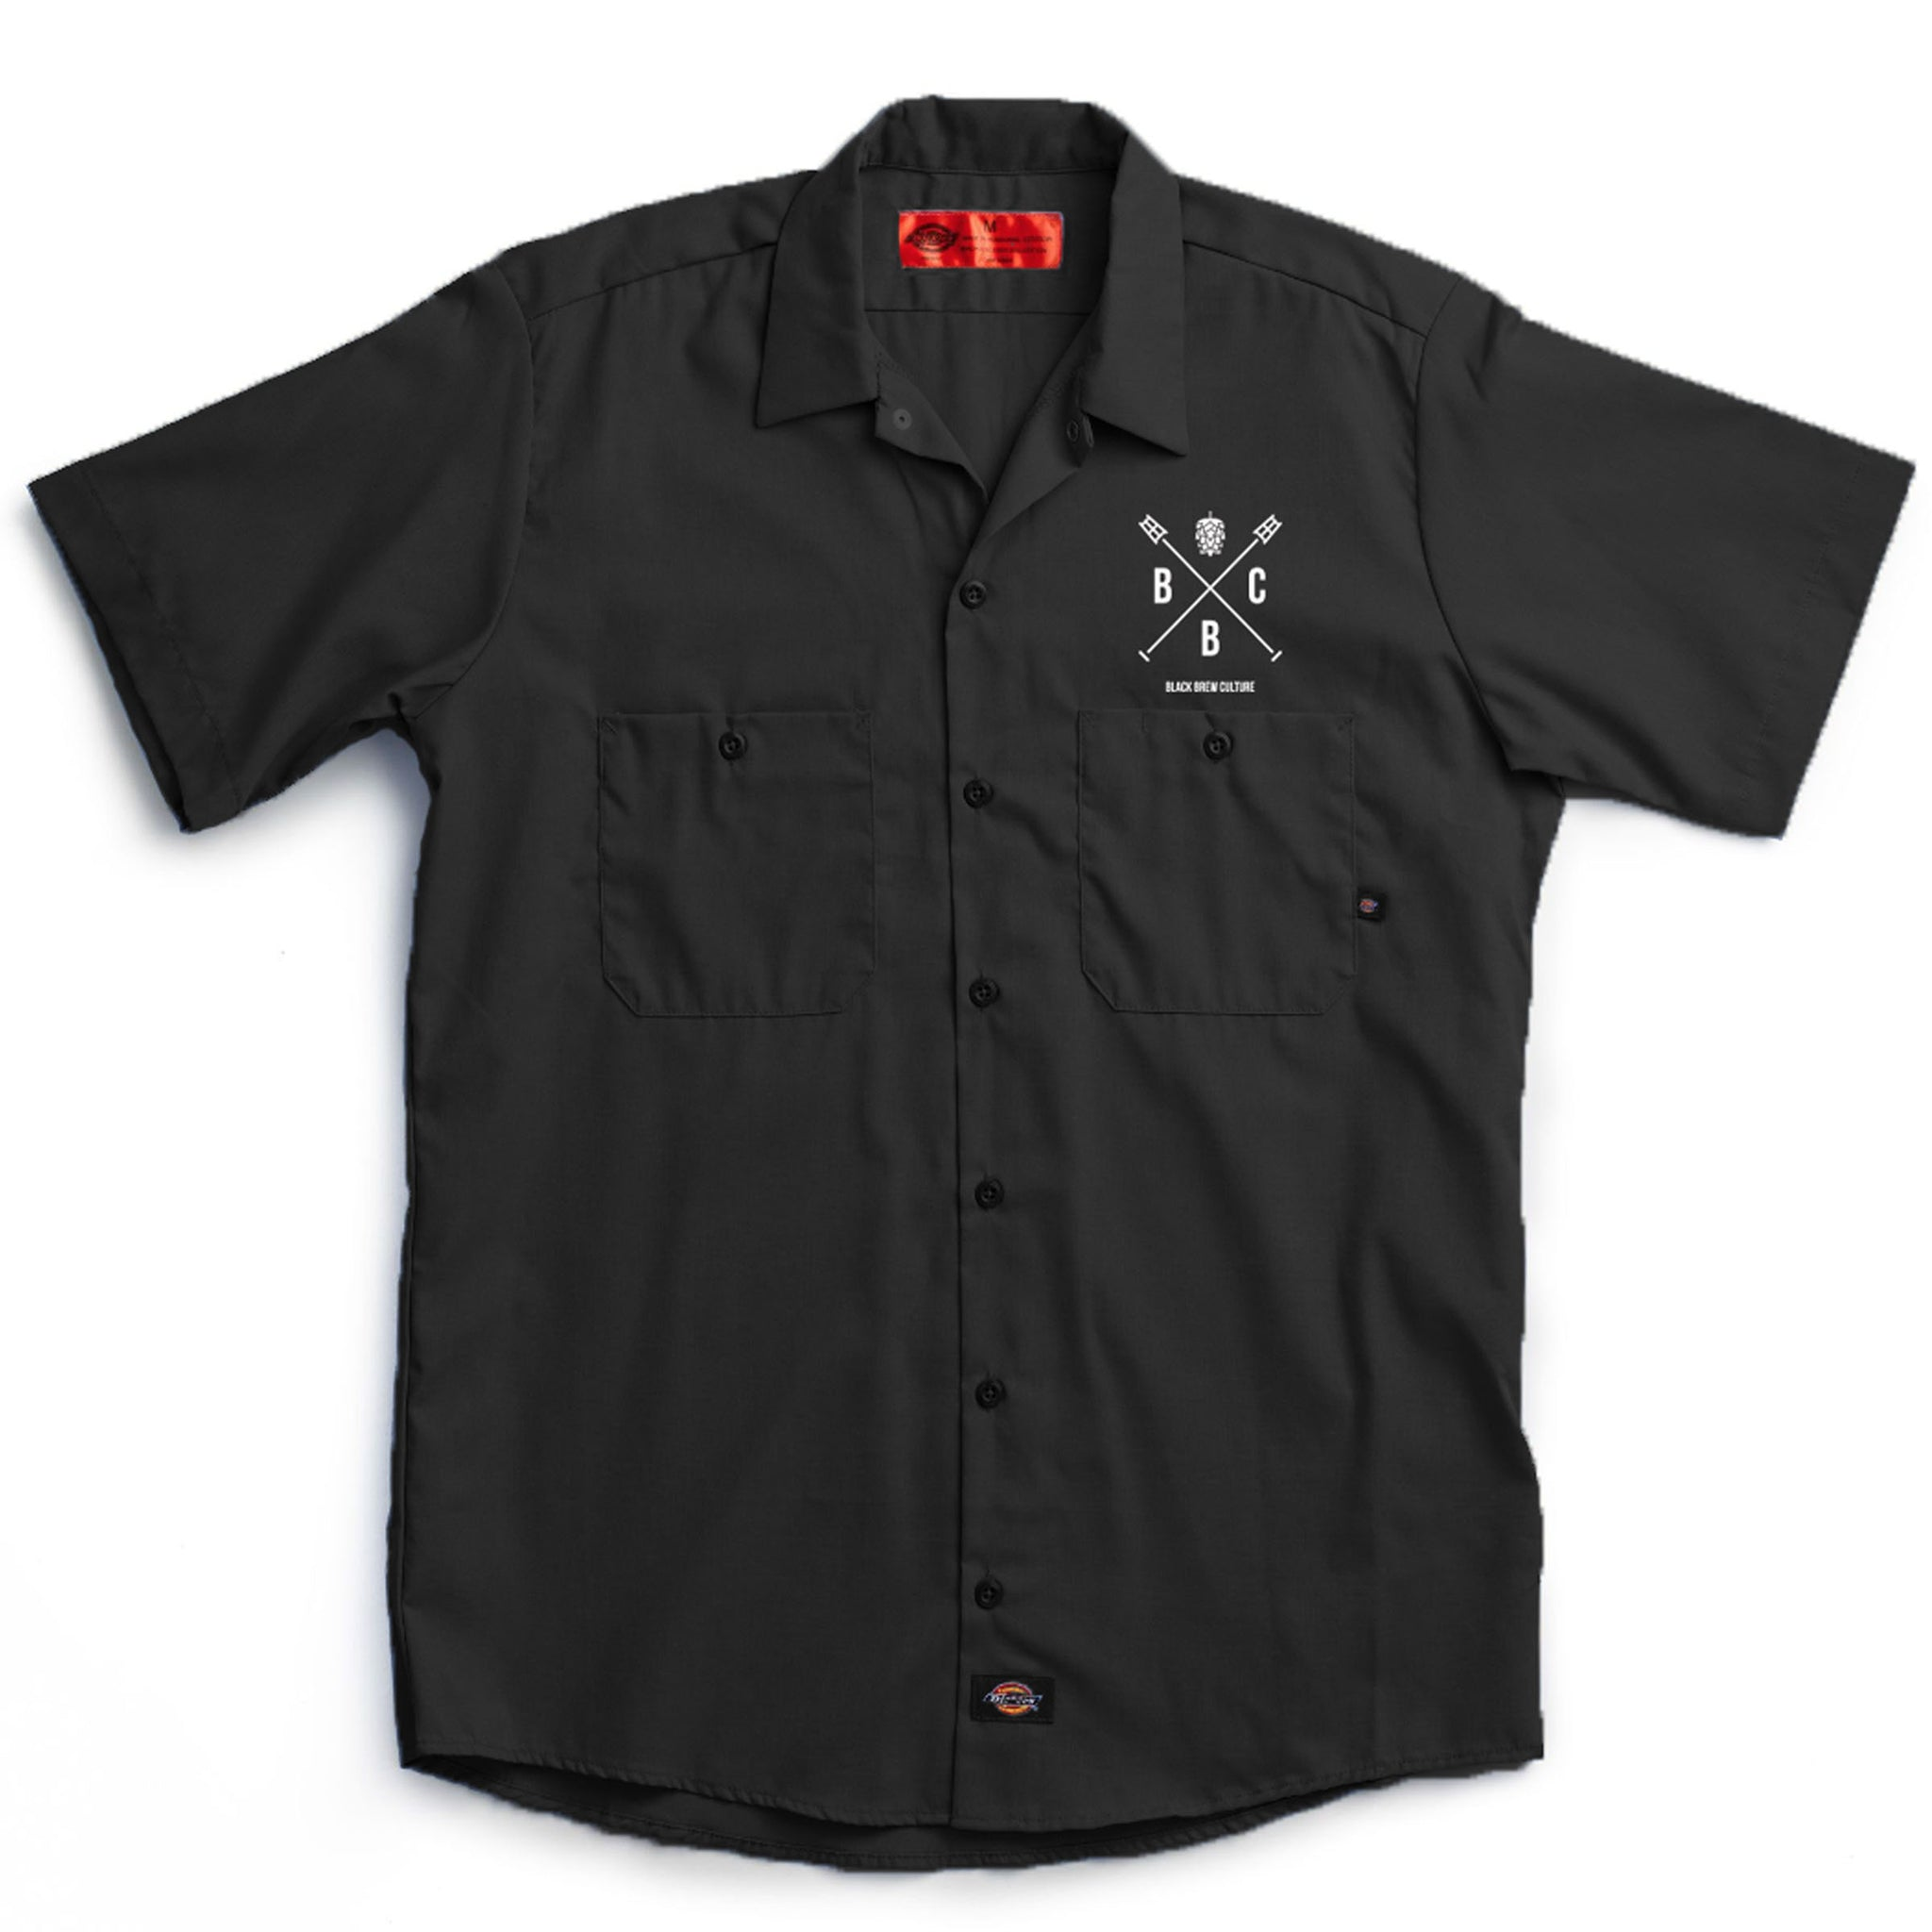 Mash Paddle Brewer Shirt - Black